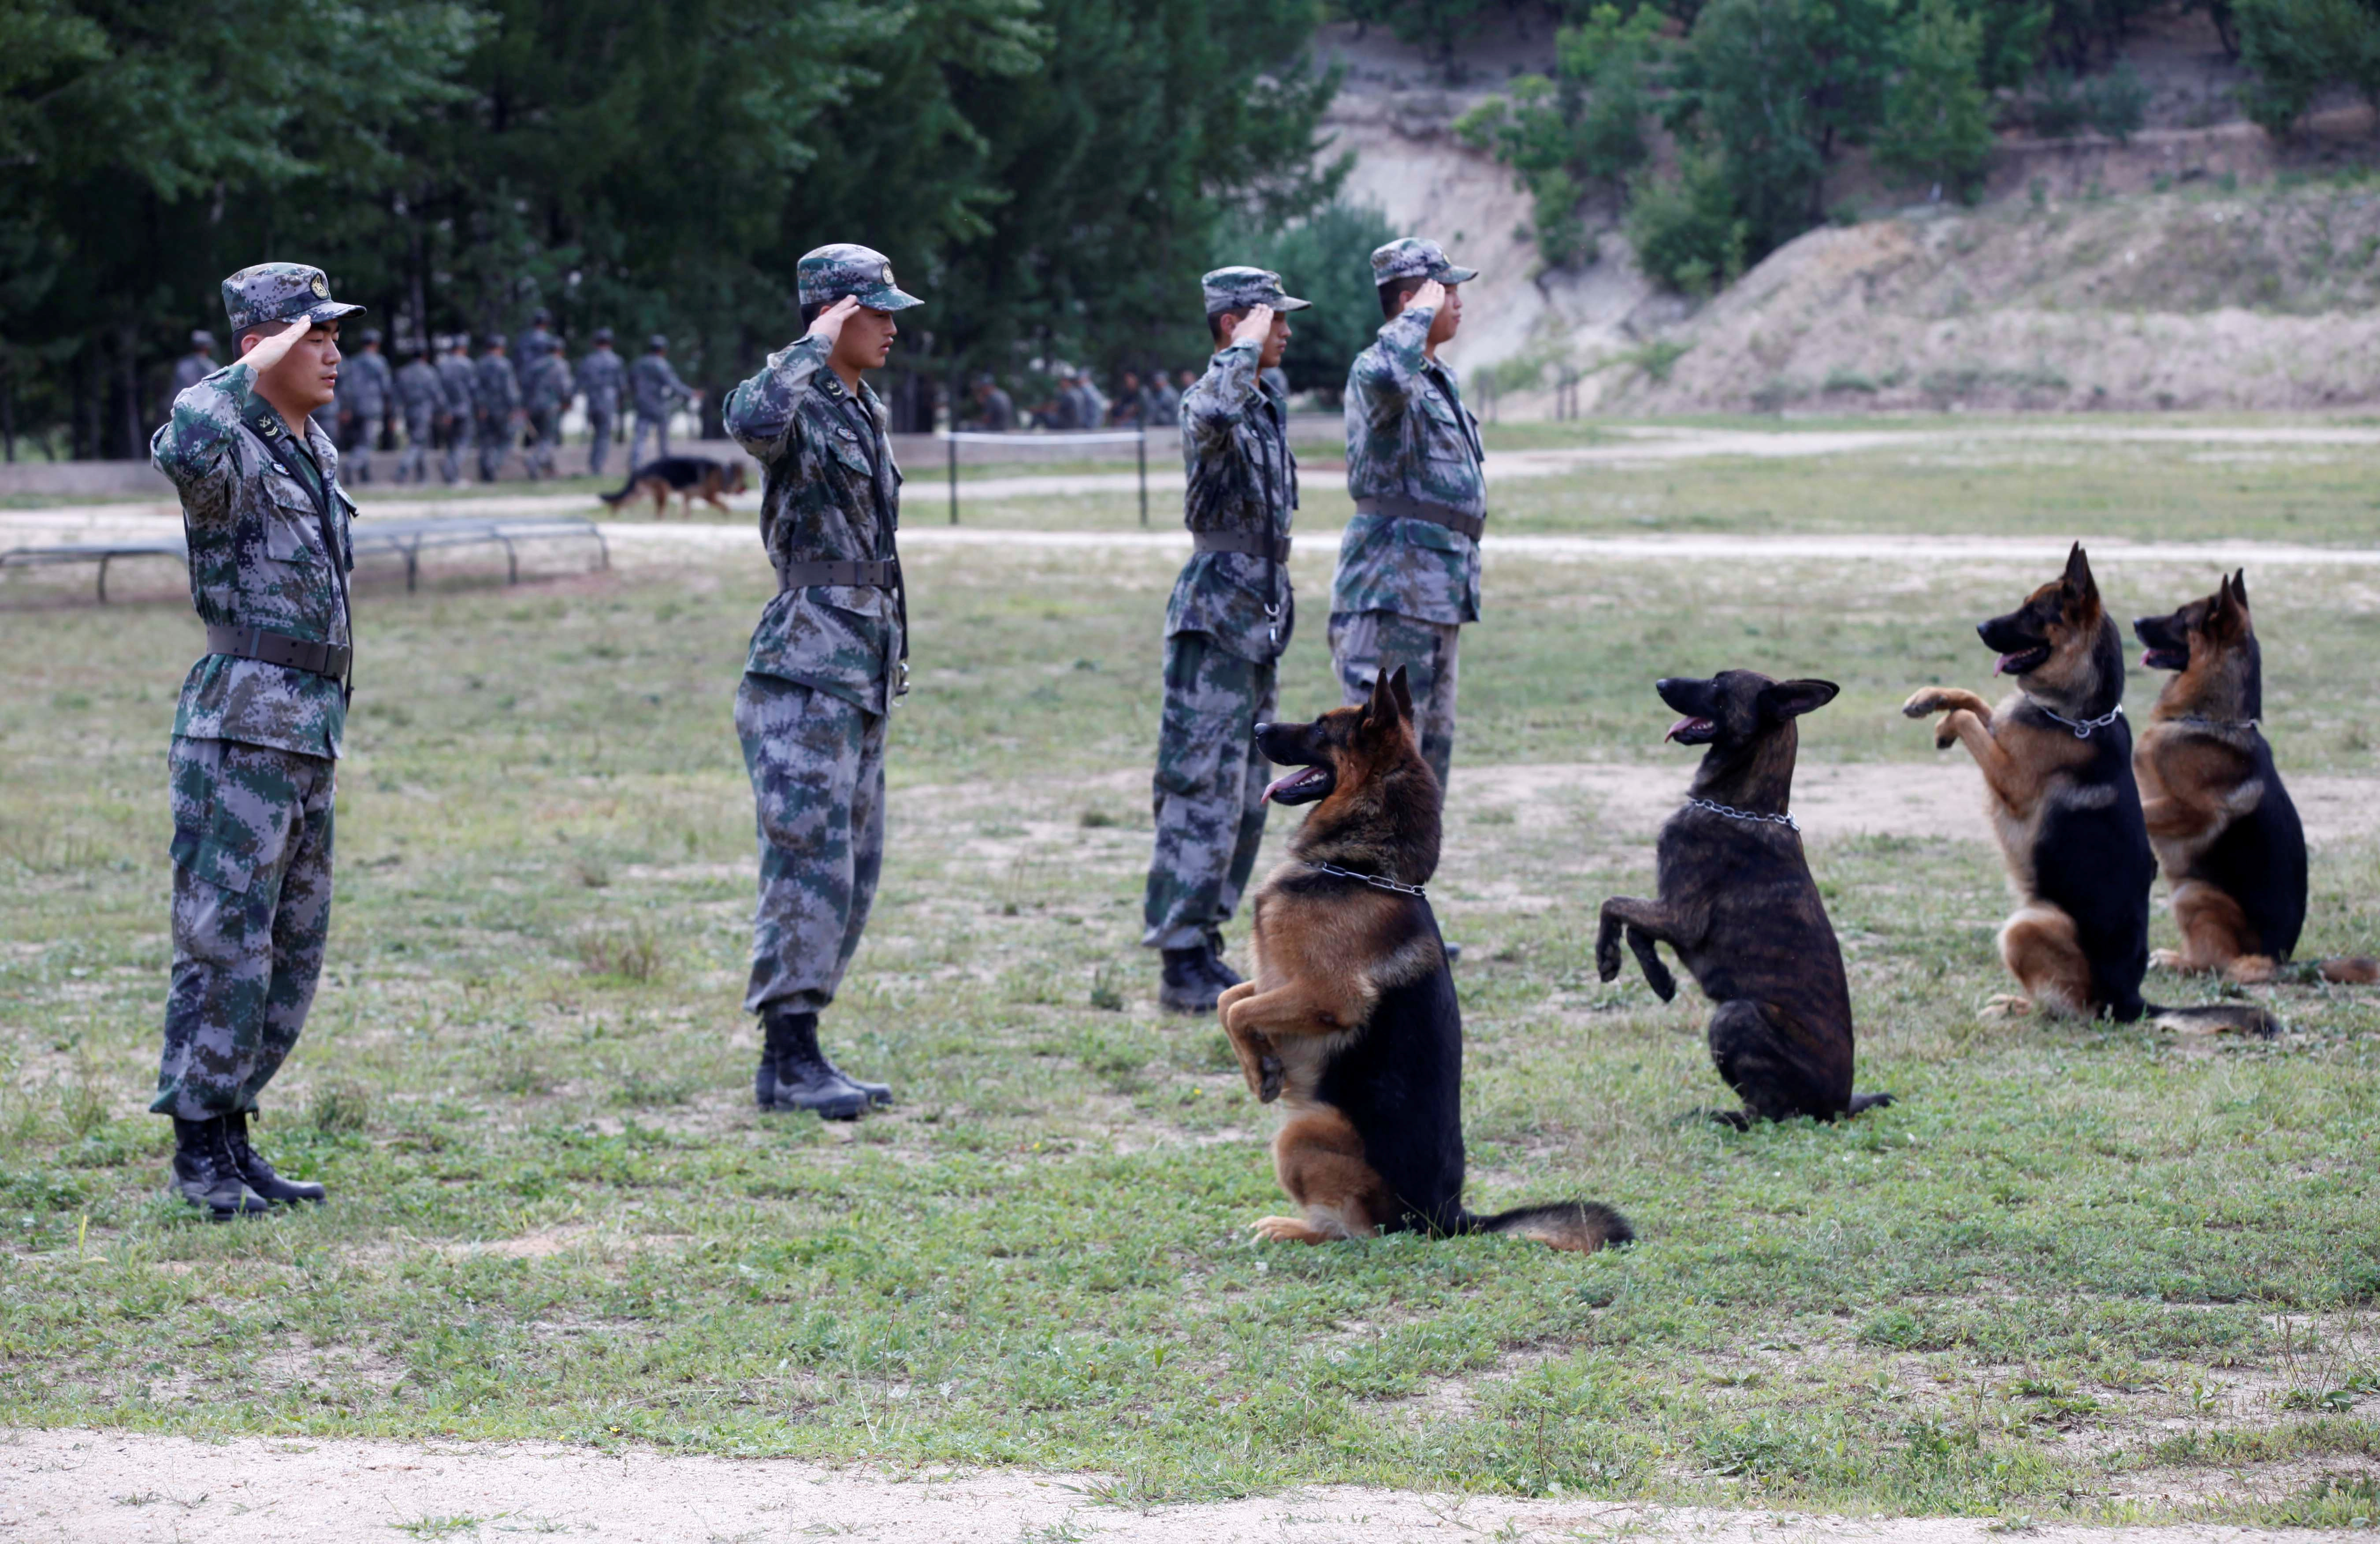 Soldiers of the Chinese People's Liberation Army salute as they perform with their dogs before a dog training competition, in Heihe, China, on Aug. 16, 2016.